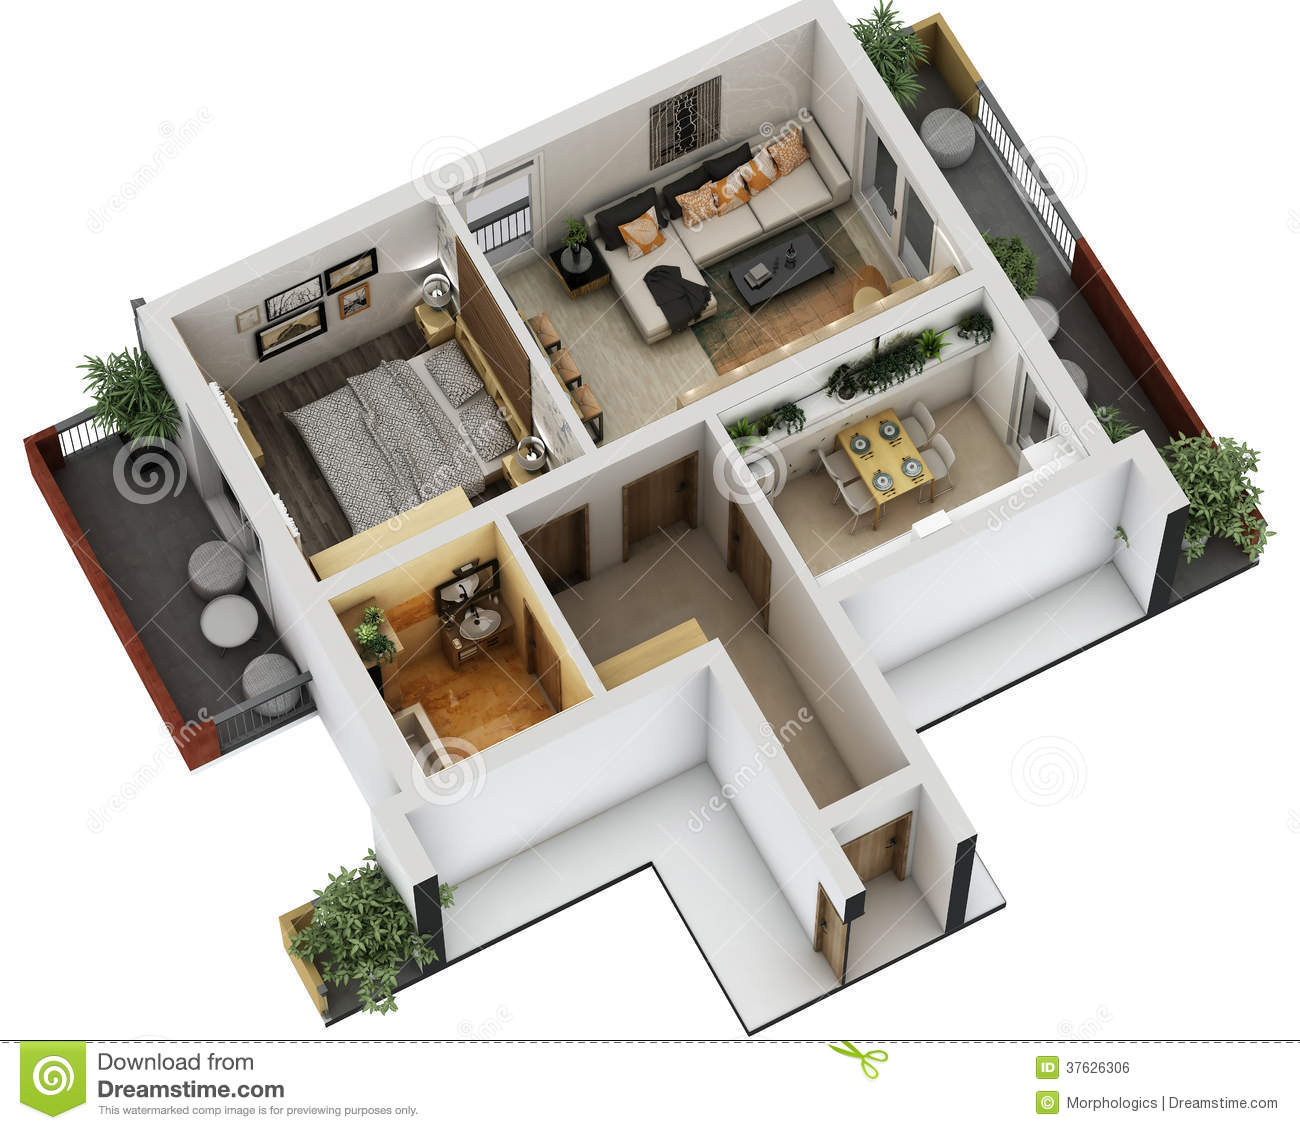 3d Floor Plan Model Free Download 3d House Plans Apk Download Free Lifestyle App For Android Apkpure Architecture Free Floor Plan Software Architecture Free Floor Plan Design Now Home Plans House House